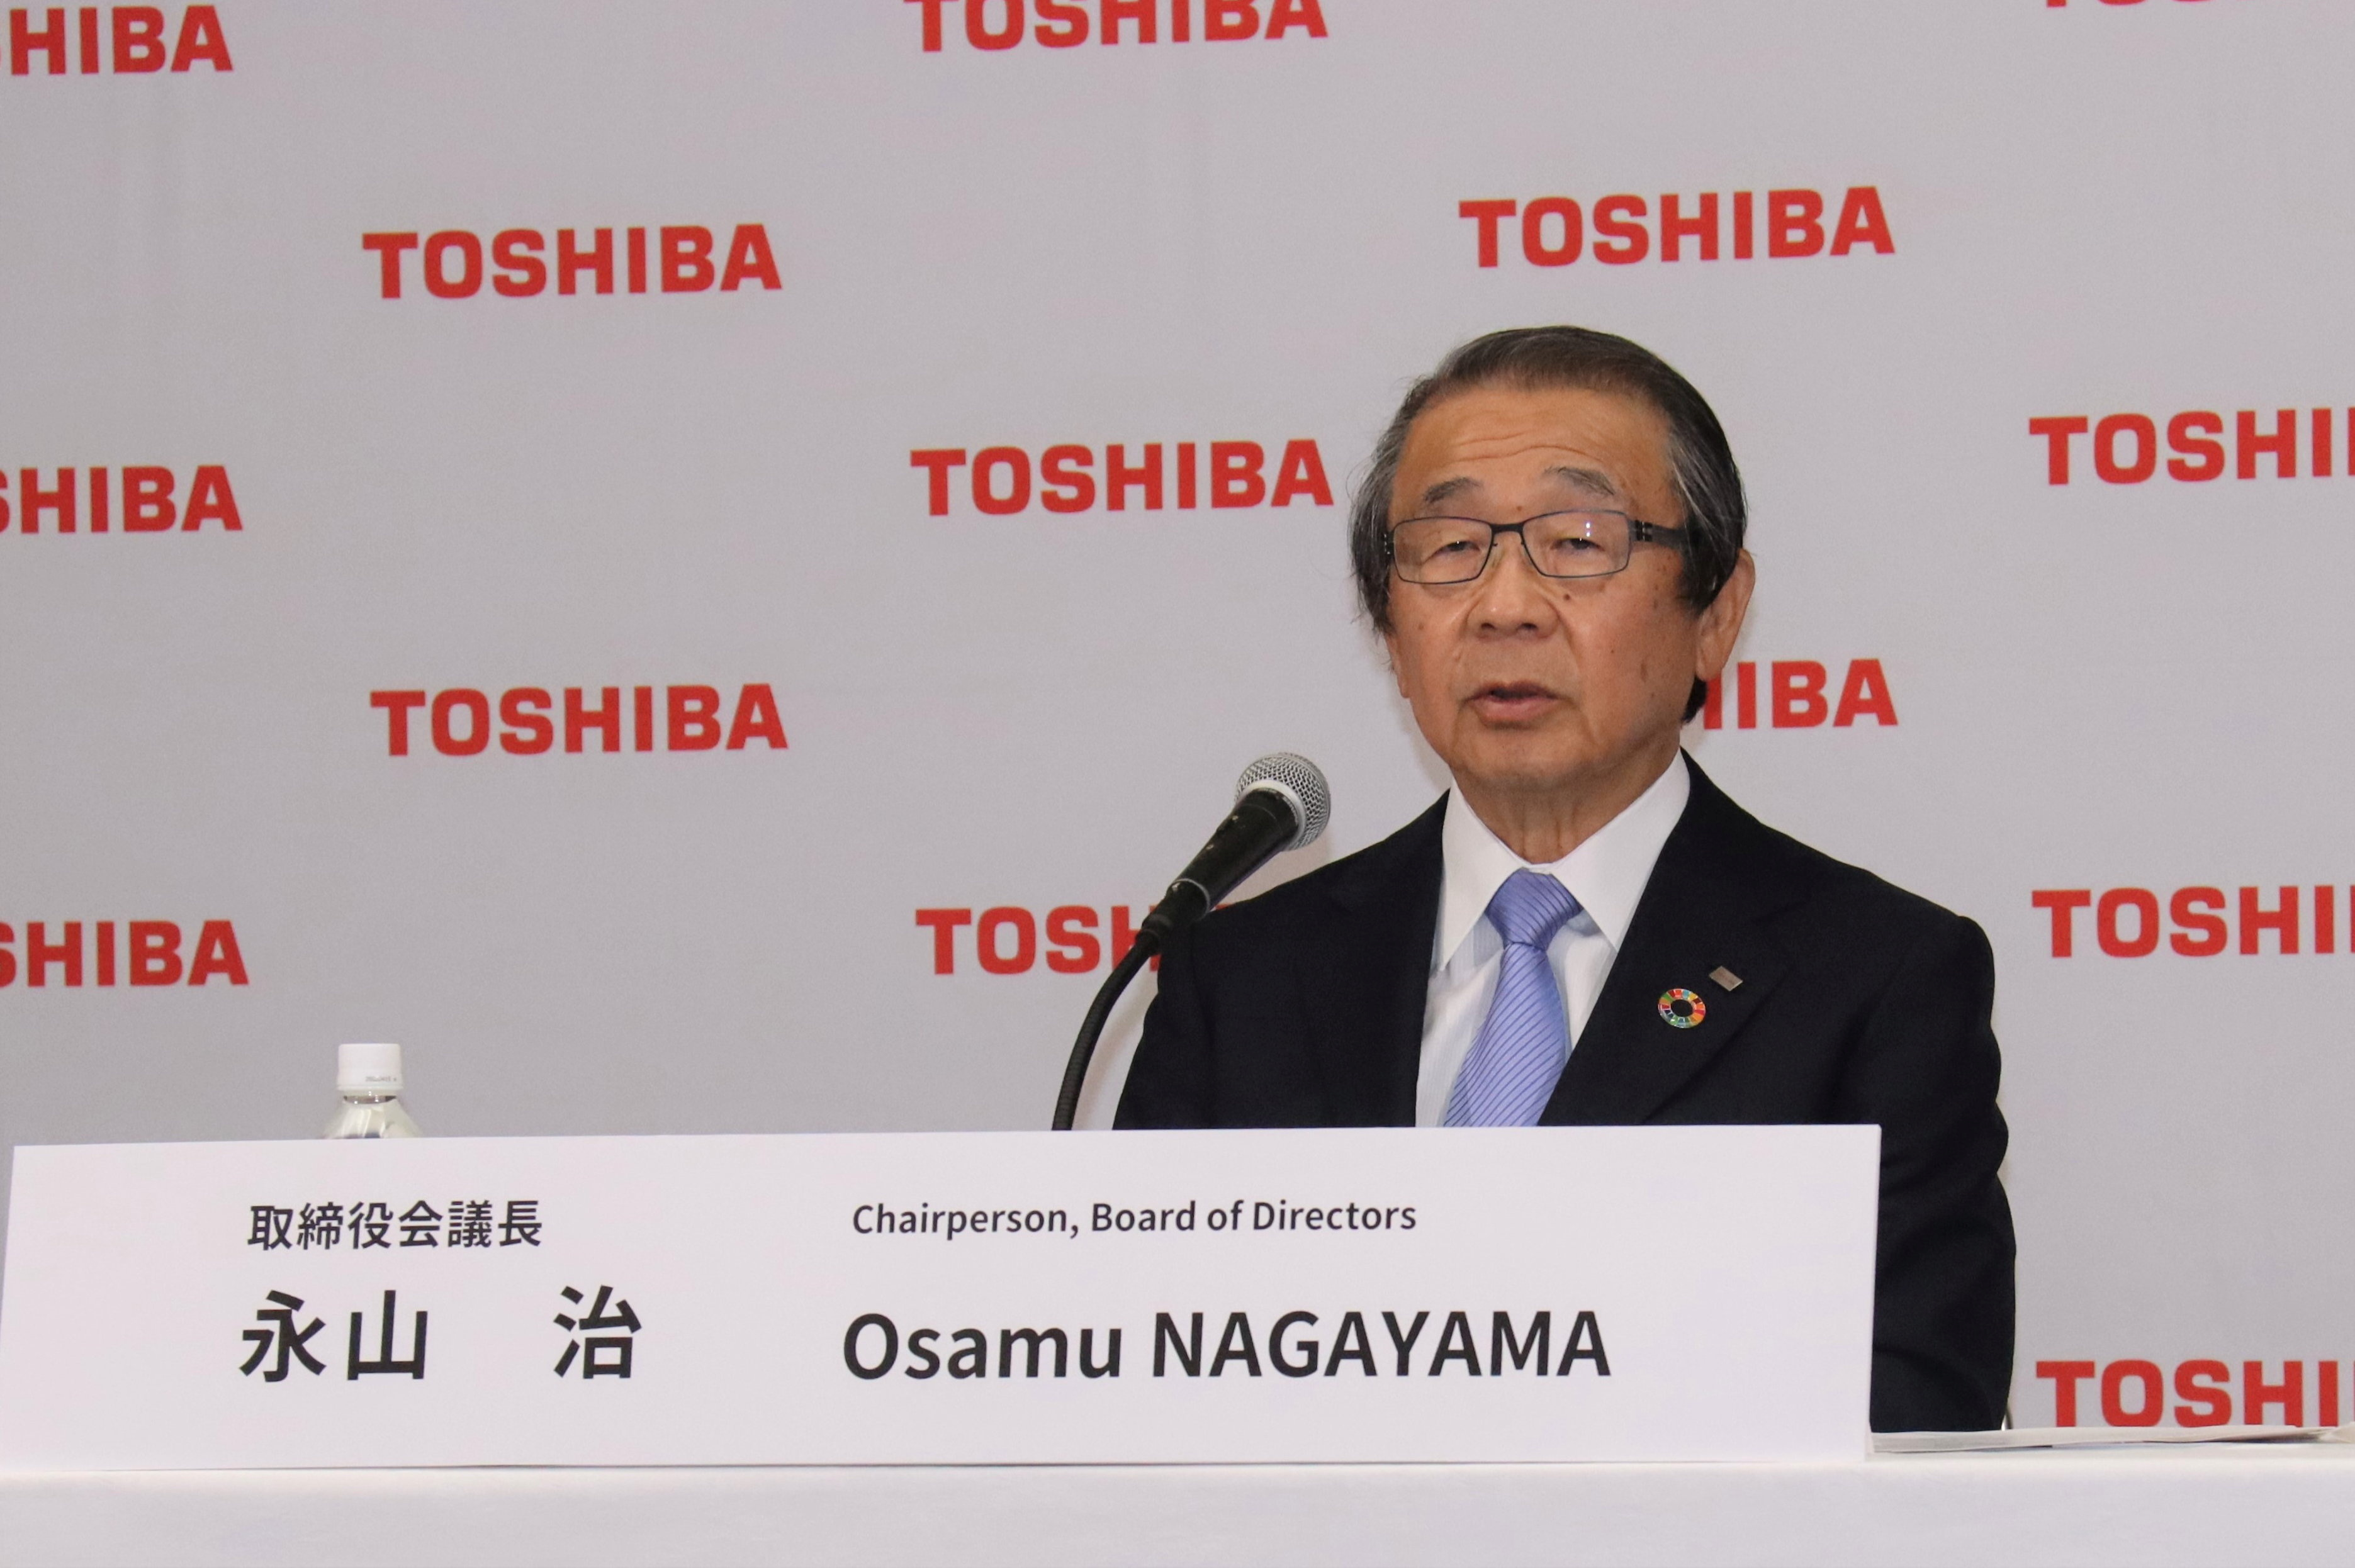 Toshiba Corp. Board of Directors Chairperson Osamu Nagayama attends a news conference in Tokyo Japan June 14, 2021, in this handout photo taken and released by Toshiba Corporation. Toshiba Corporation/Handout via REUTERS